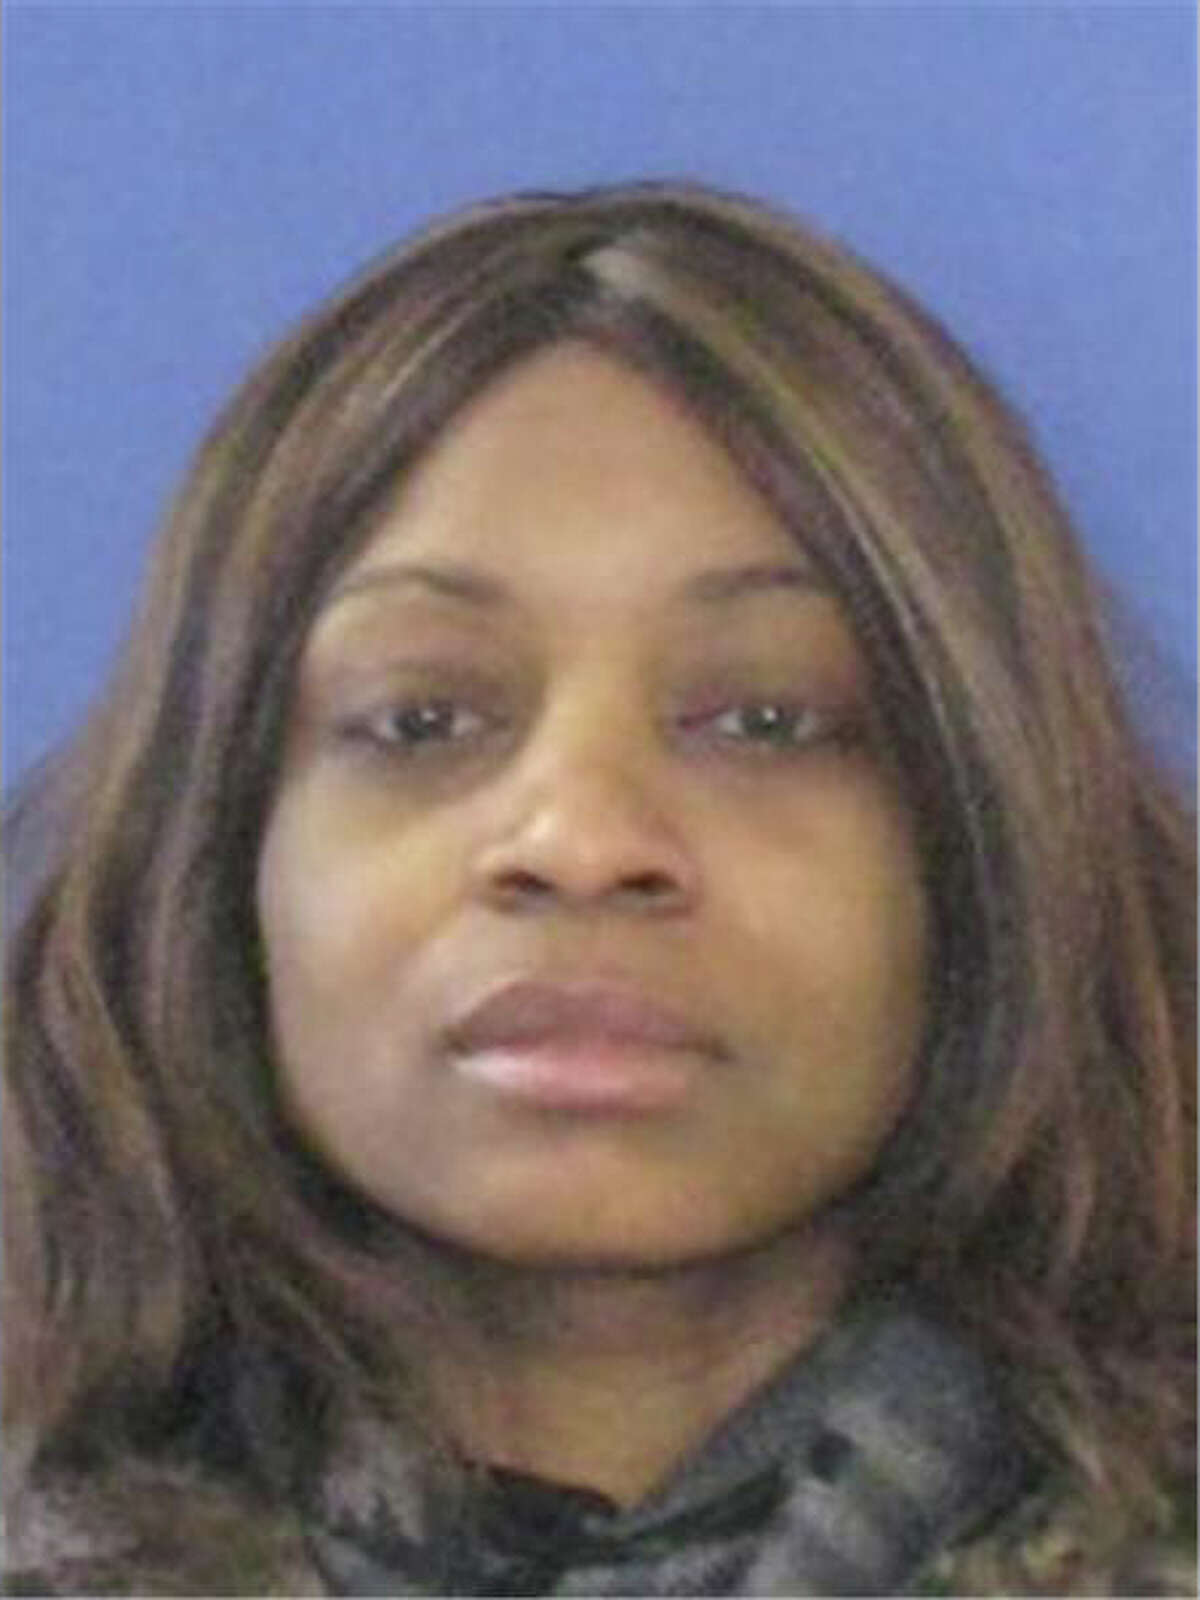 Felicia Burl, 32, is being sought by police in connection with a double-fatal accident on Stamford's West Side on Nov. 7, 2014.